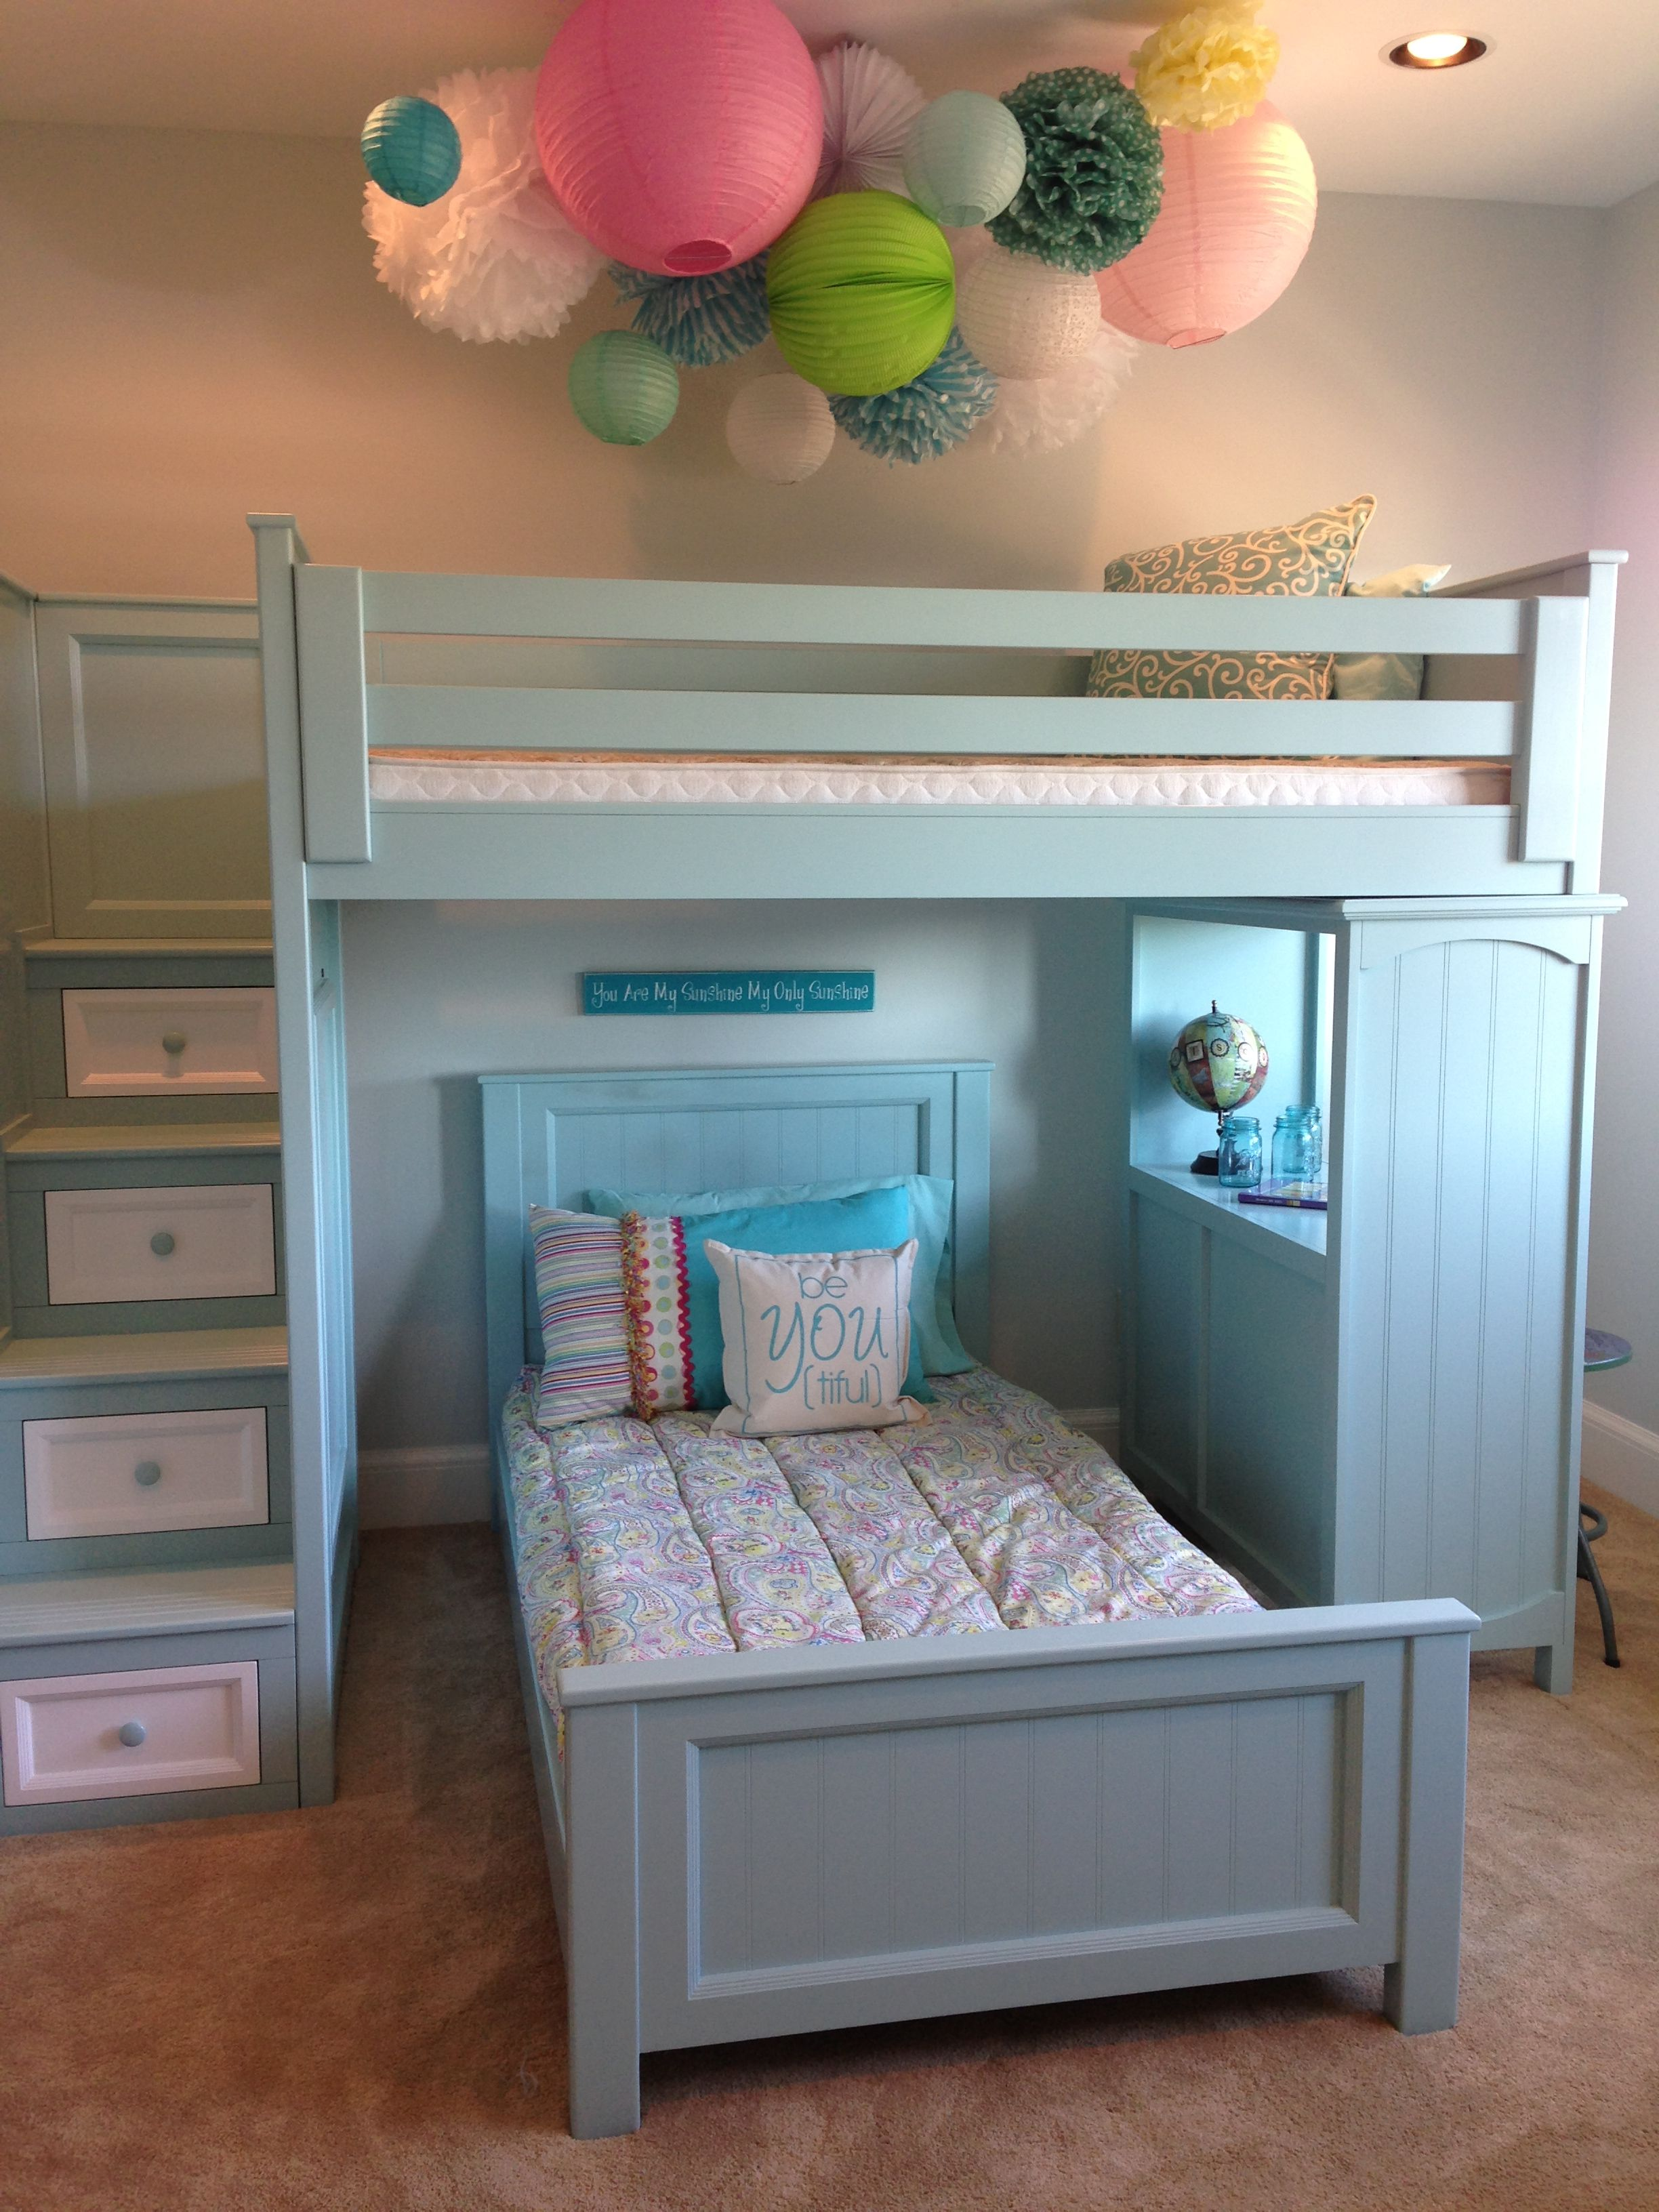 Goodnight Room Bunk Bed For A Little Girls Bedroom Ameriandreamsod